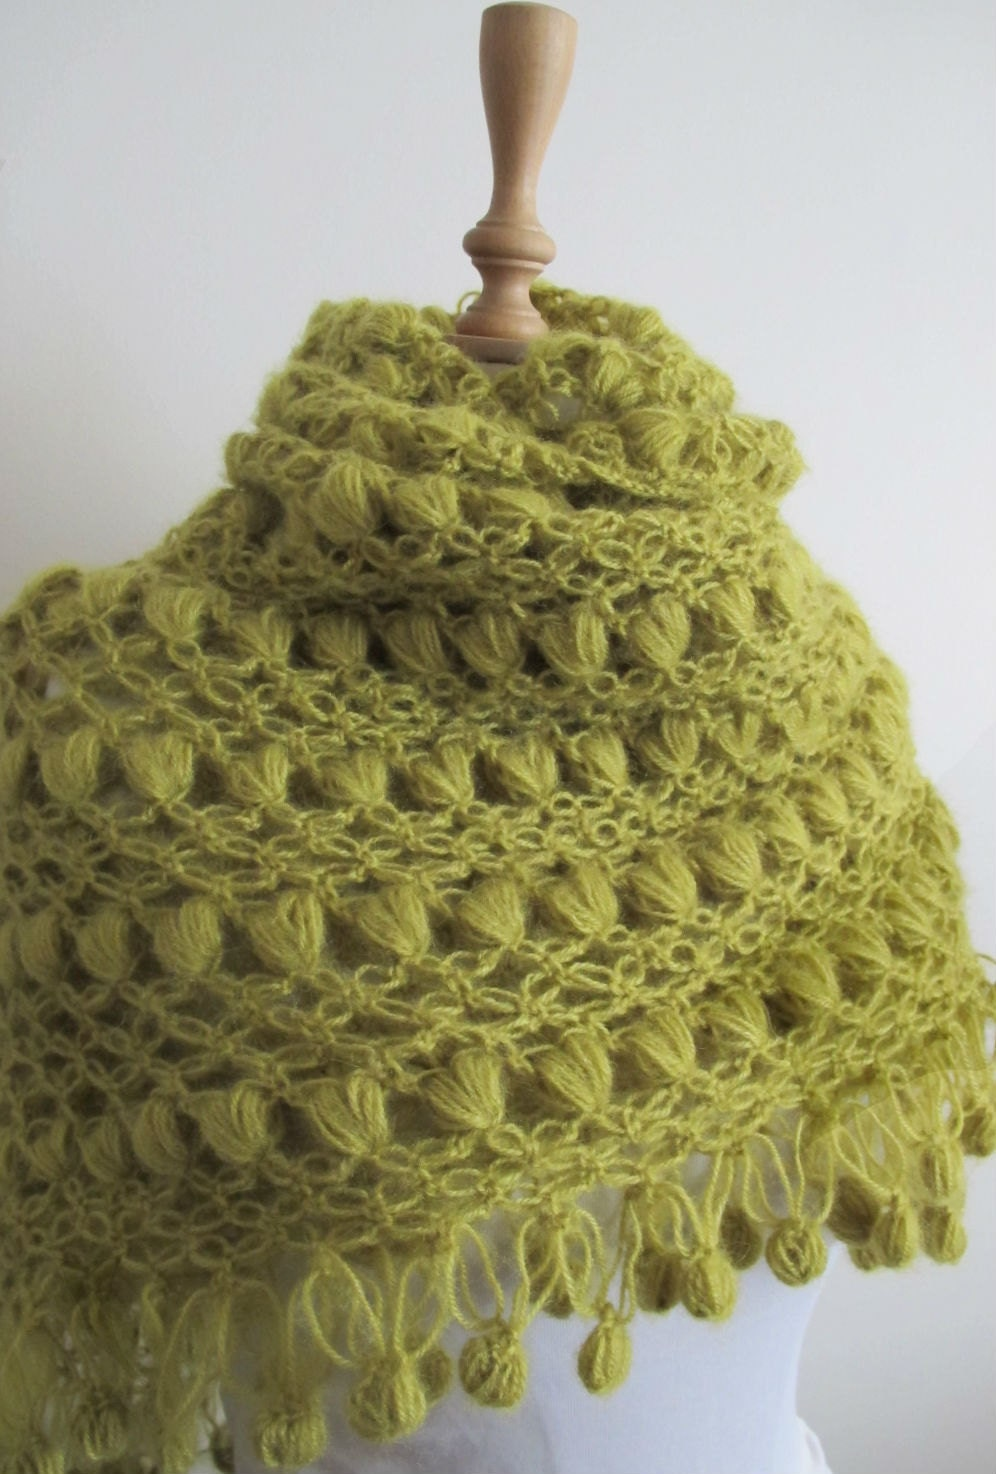 Free Knit & Crochet Scarf & Hat  free online knitting patterns Crochet Scarves And Hats Patterns